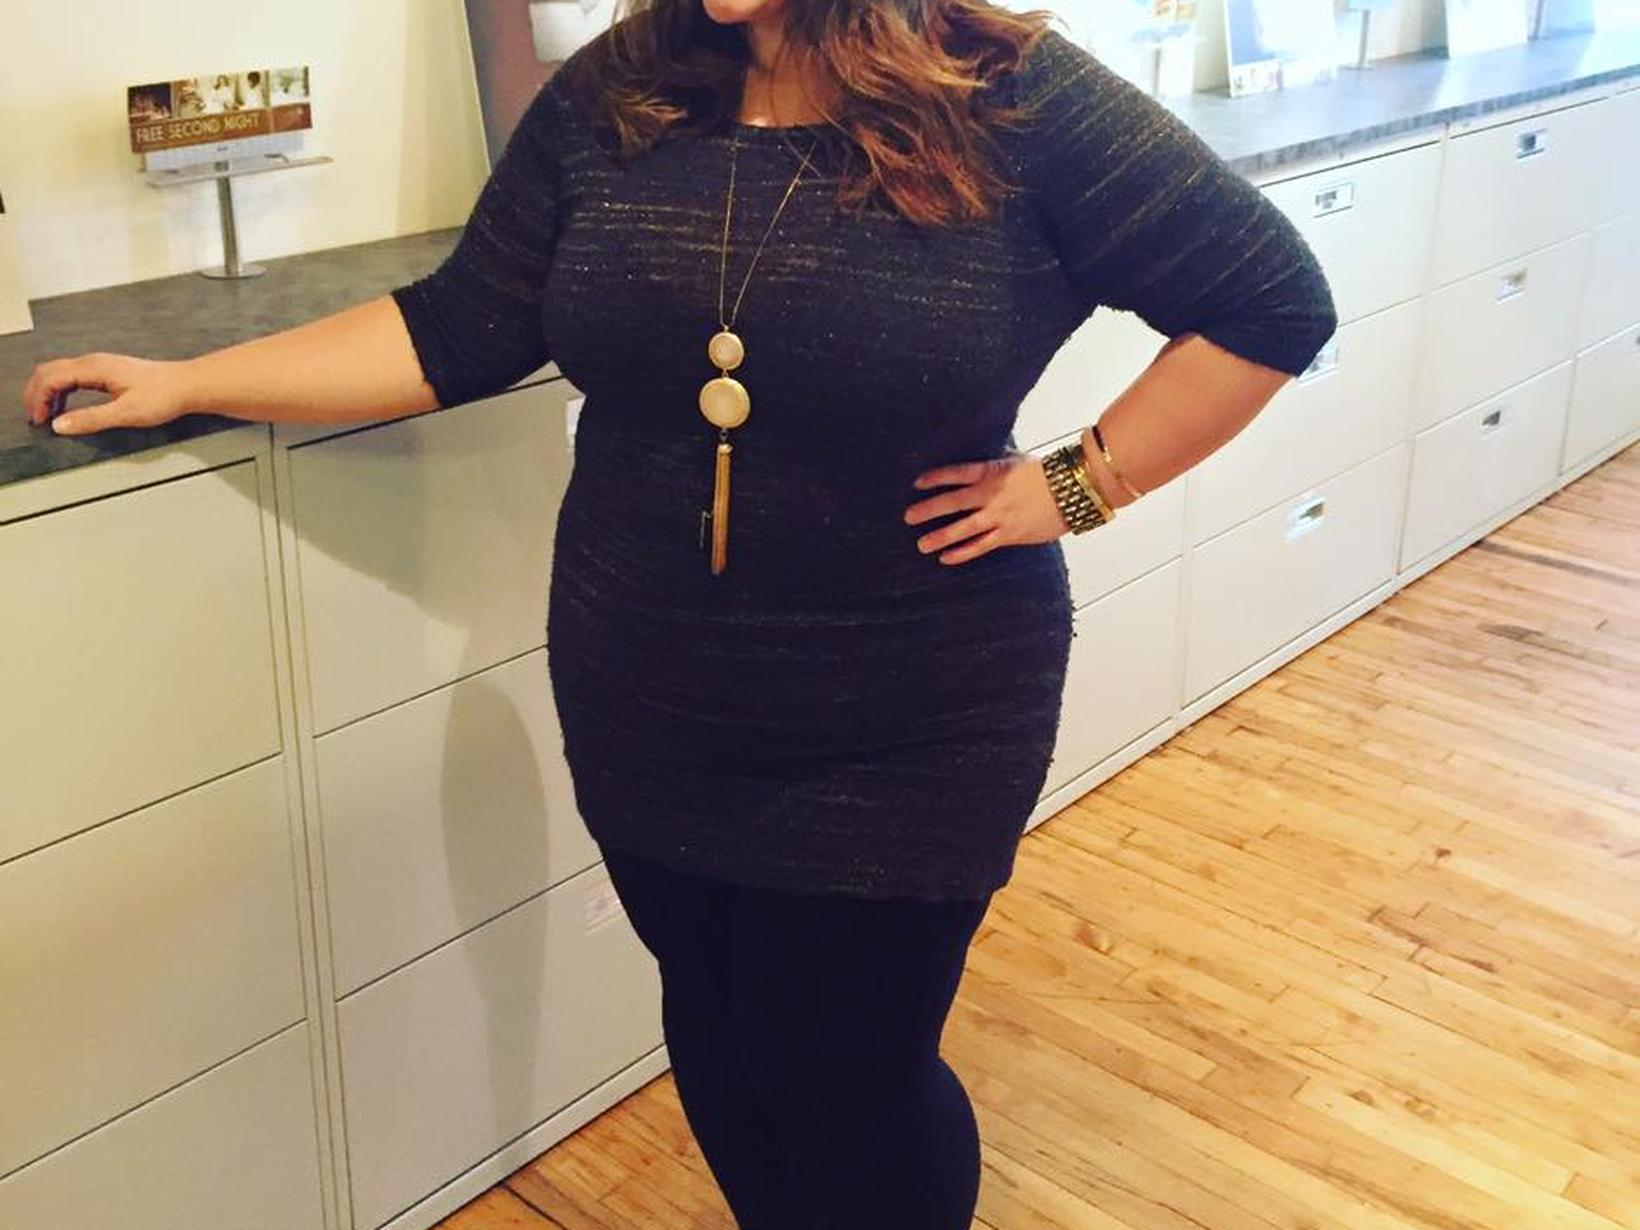 Stephanie from Chicago Loop, Illinois, United States